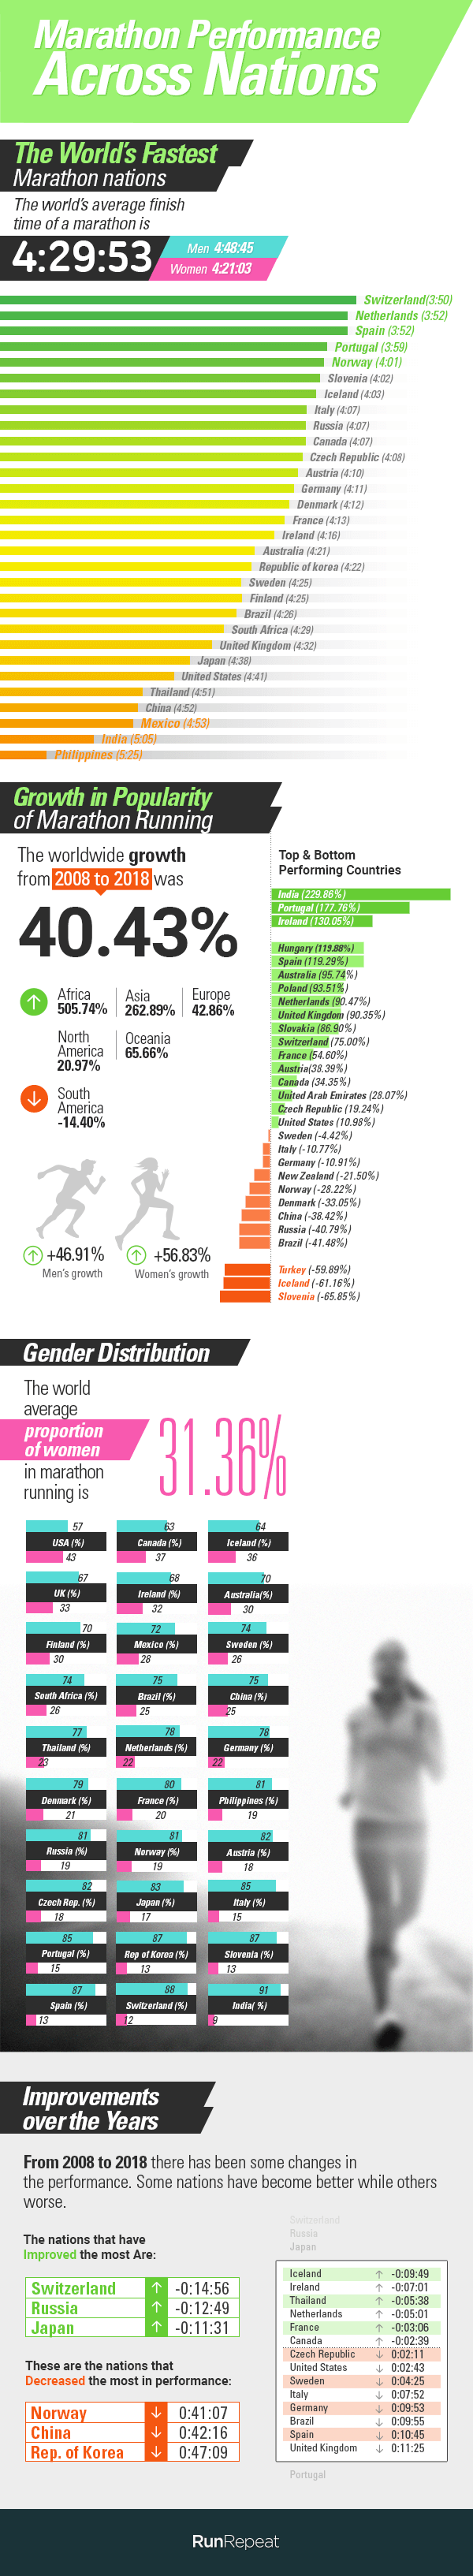 Marathon Statistics 2019 Worldwide (Research)